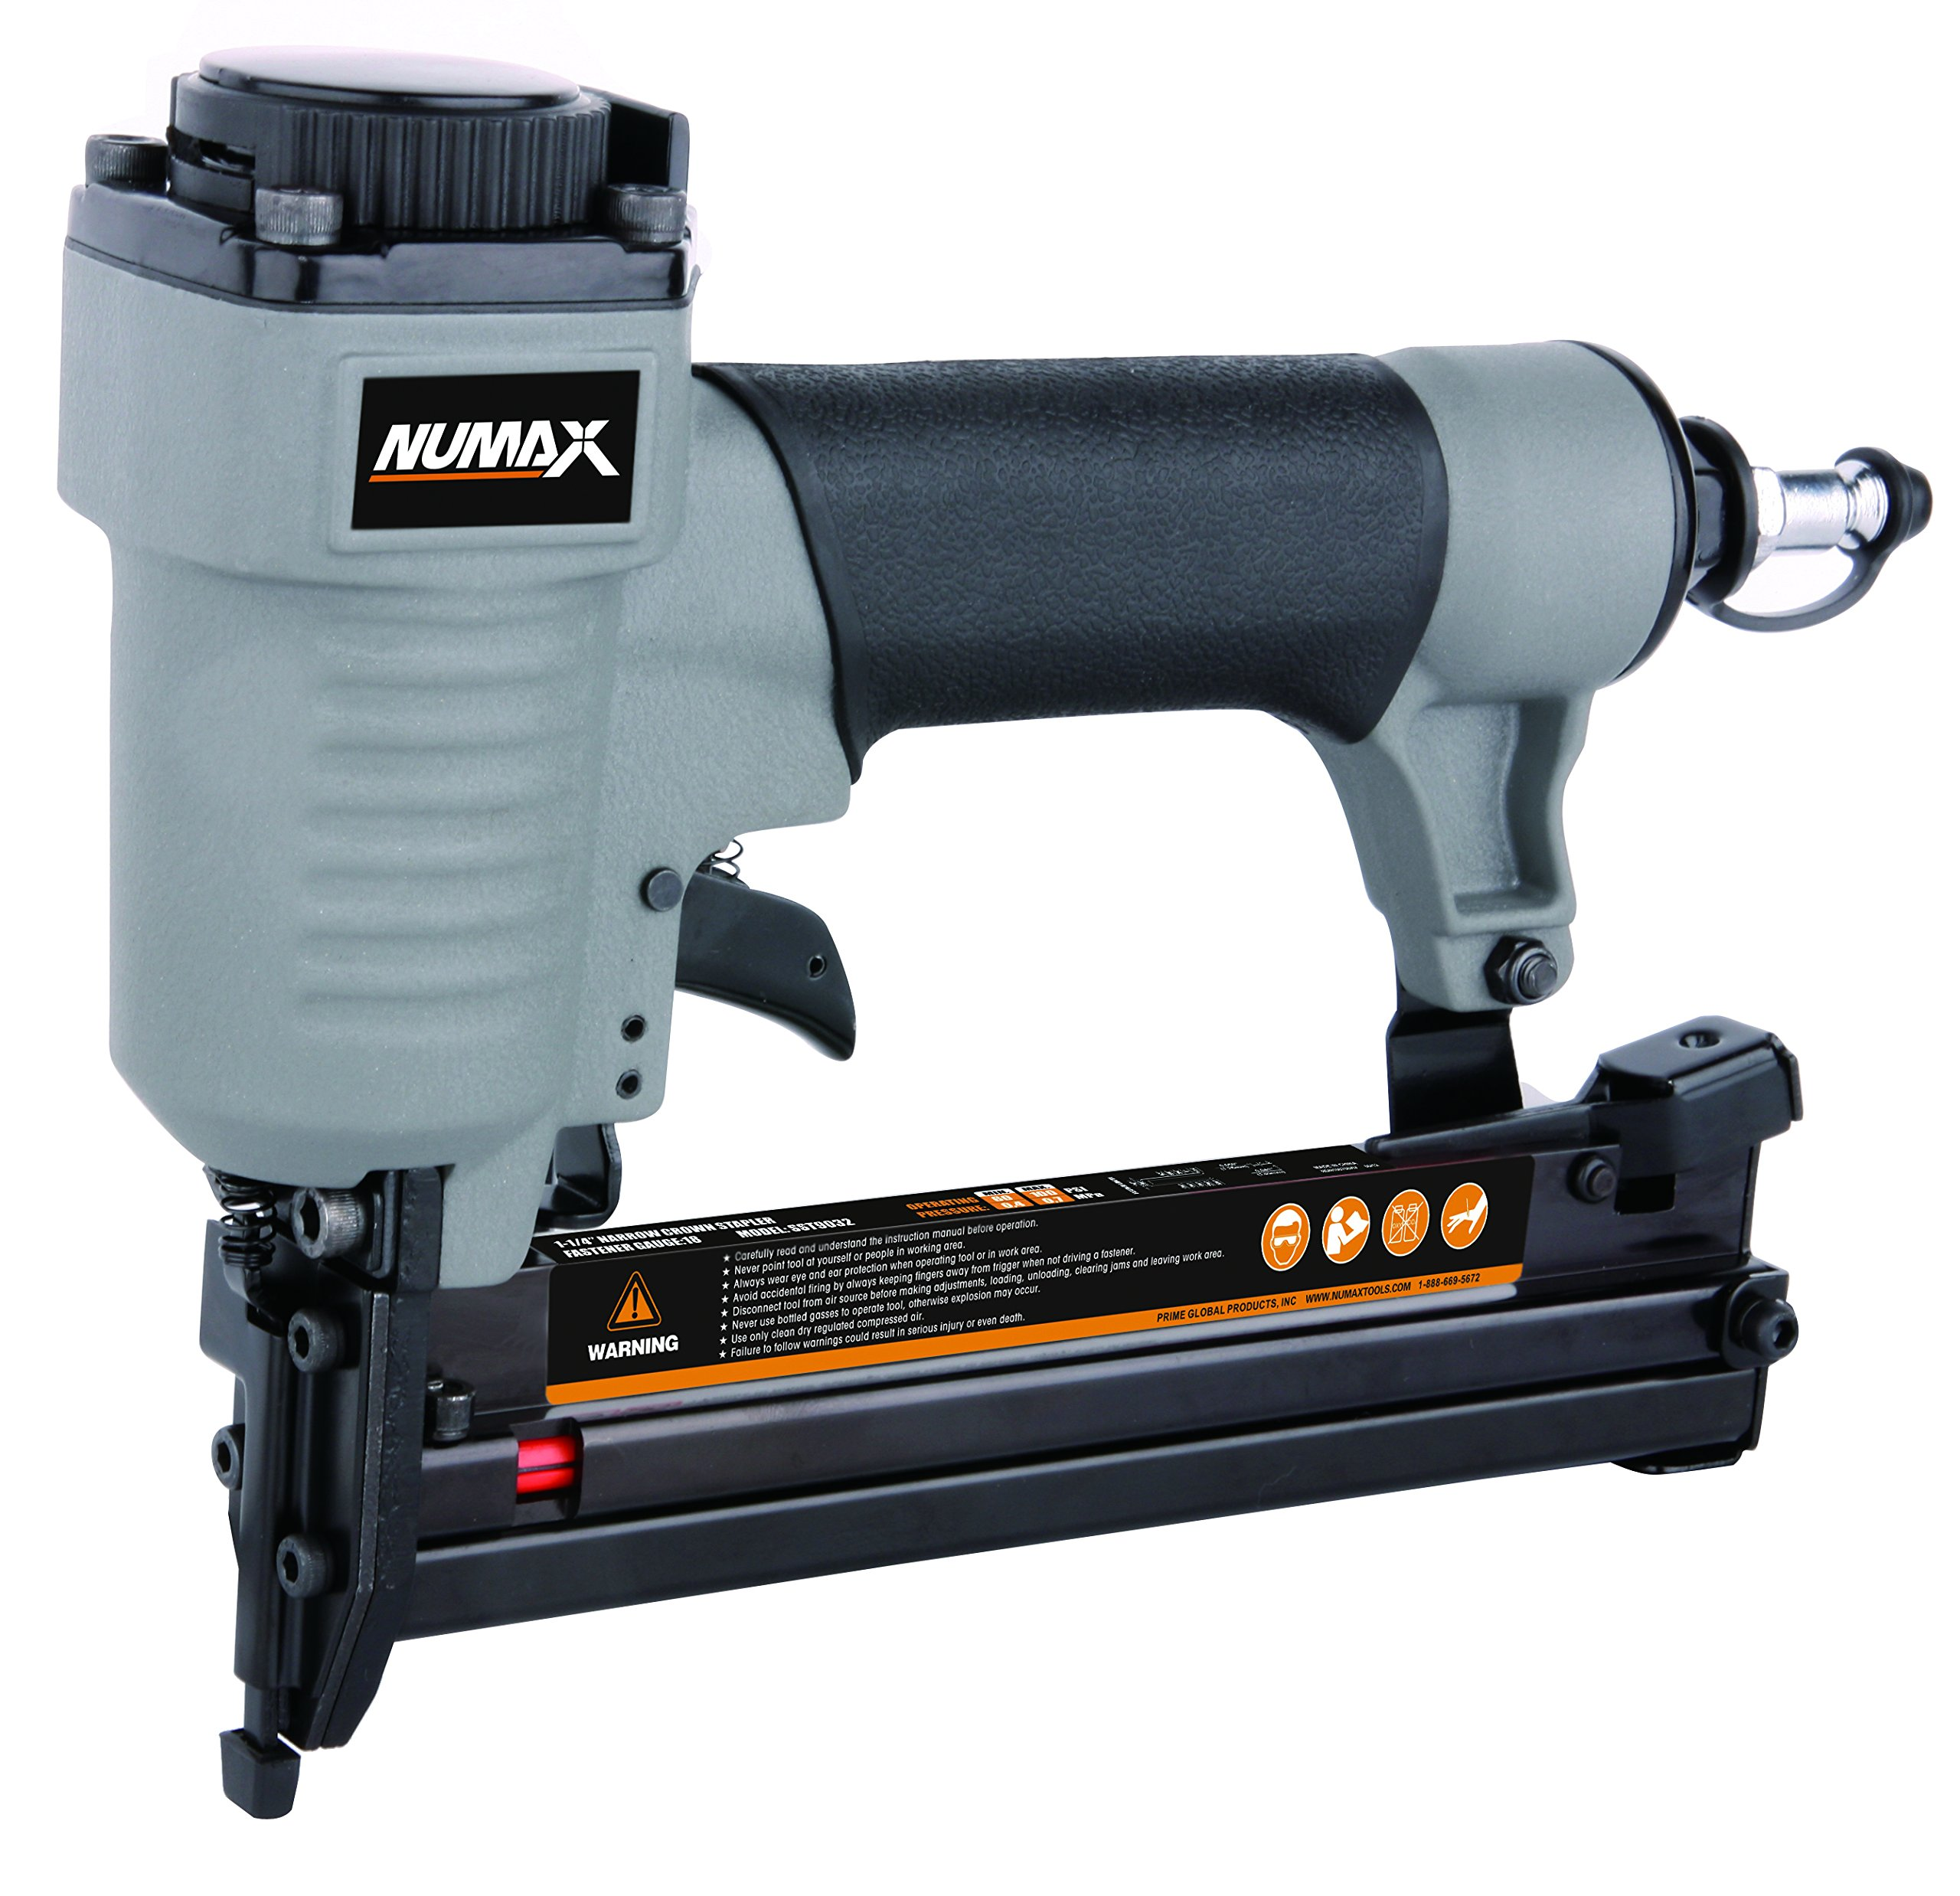 NuMax SST9032 18-Gauge 1-1/4-Inch Narrow Crown Stapler